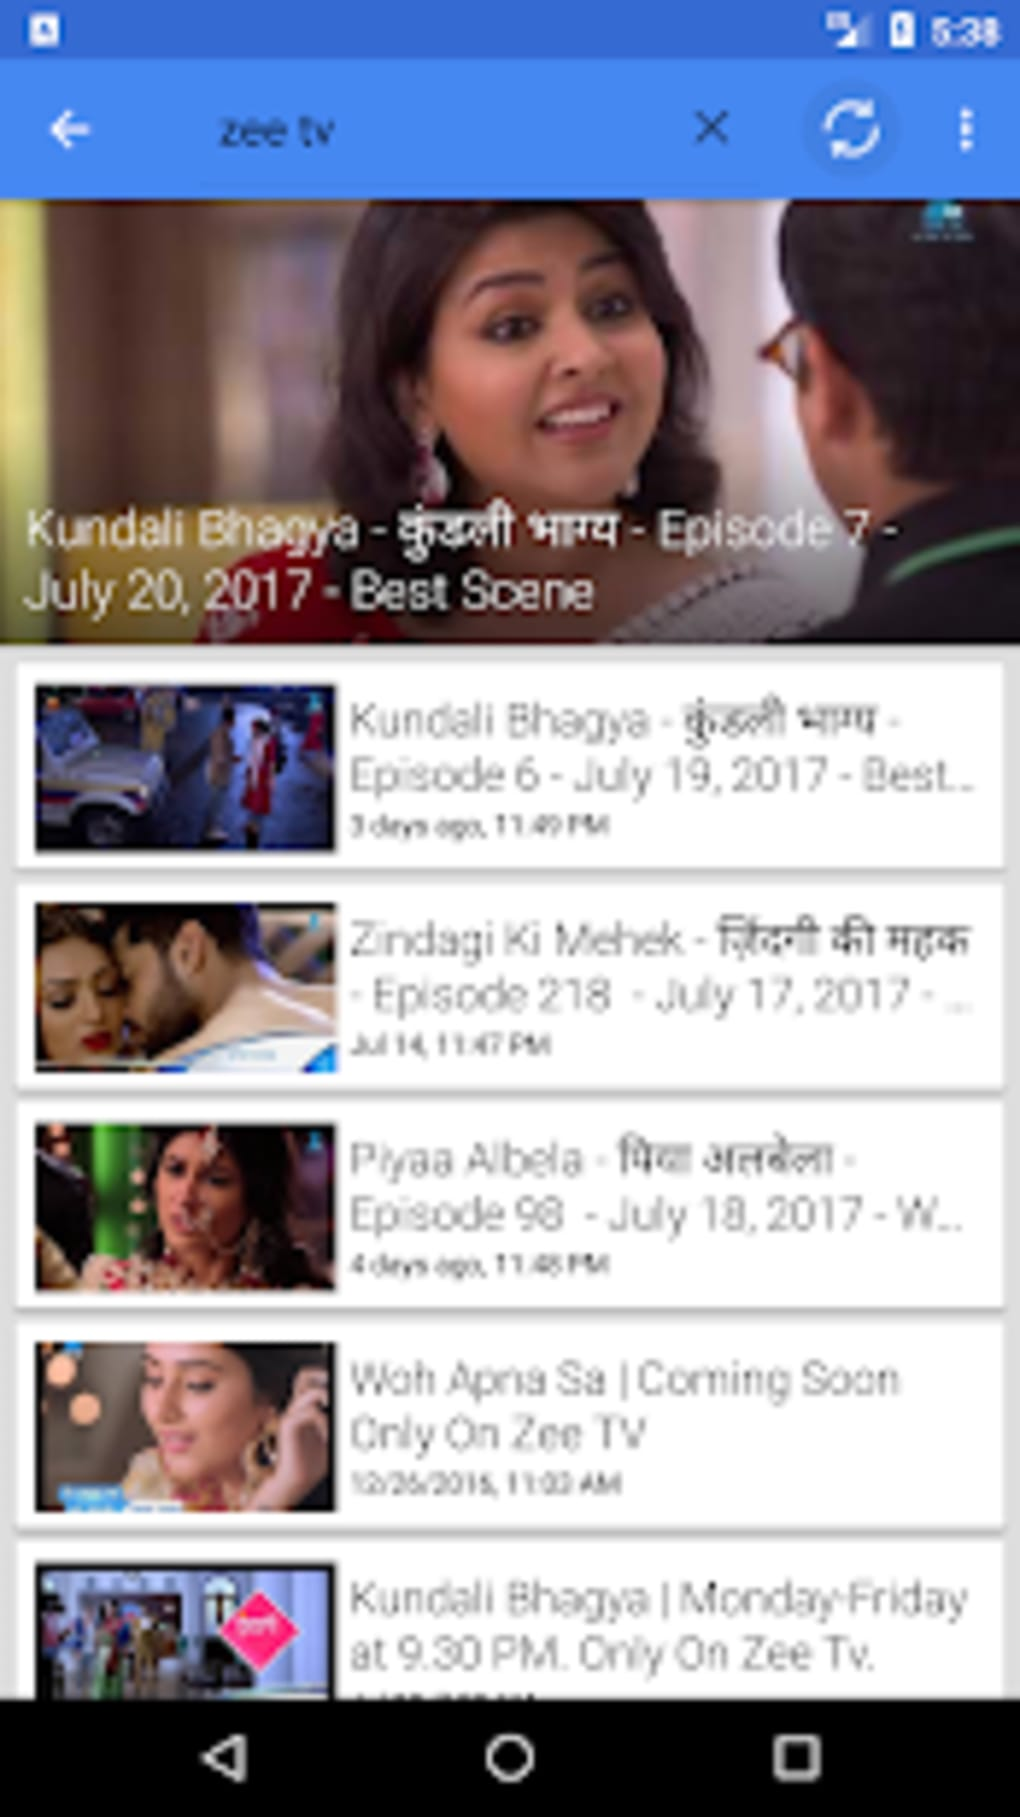 ZEE TV Channels for Android - Download